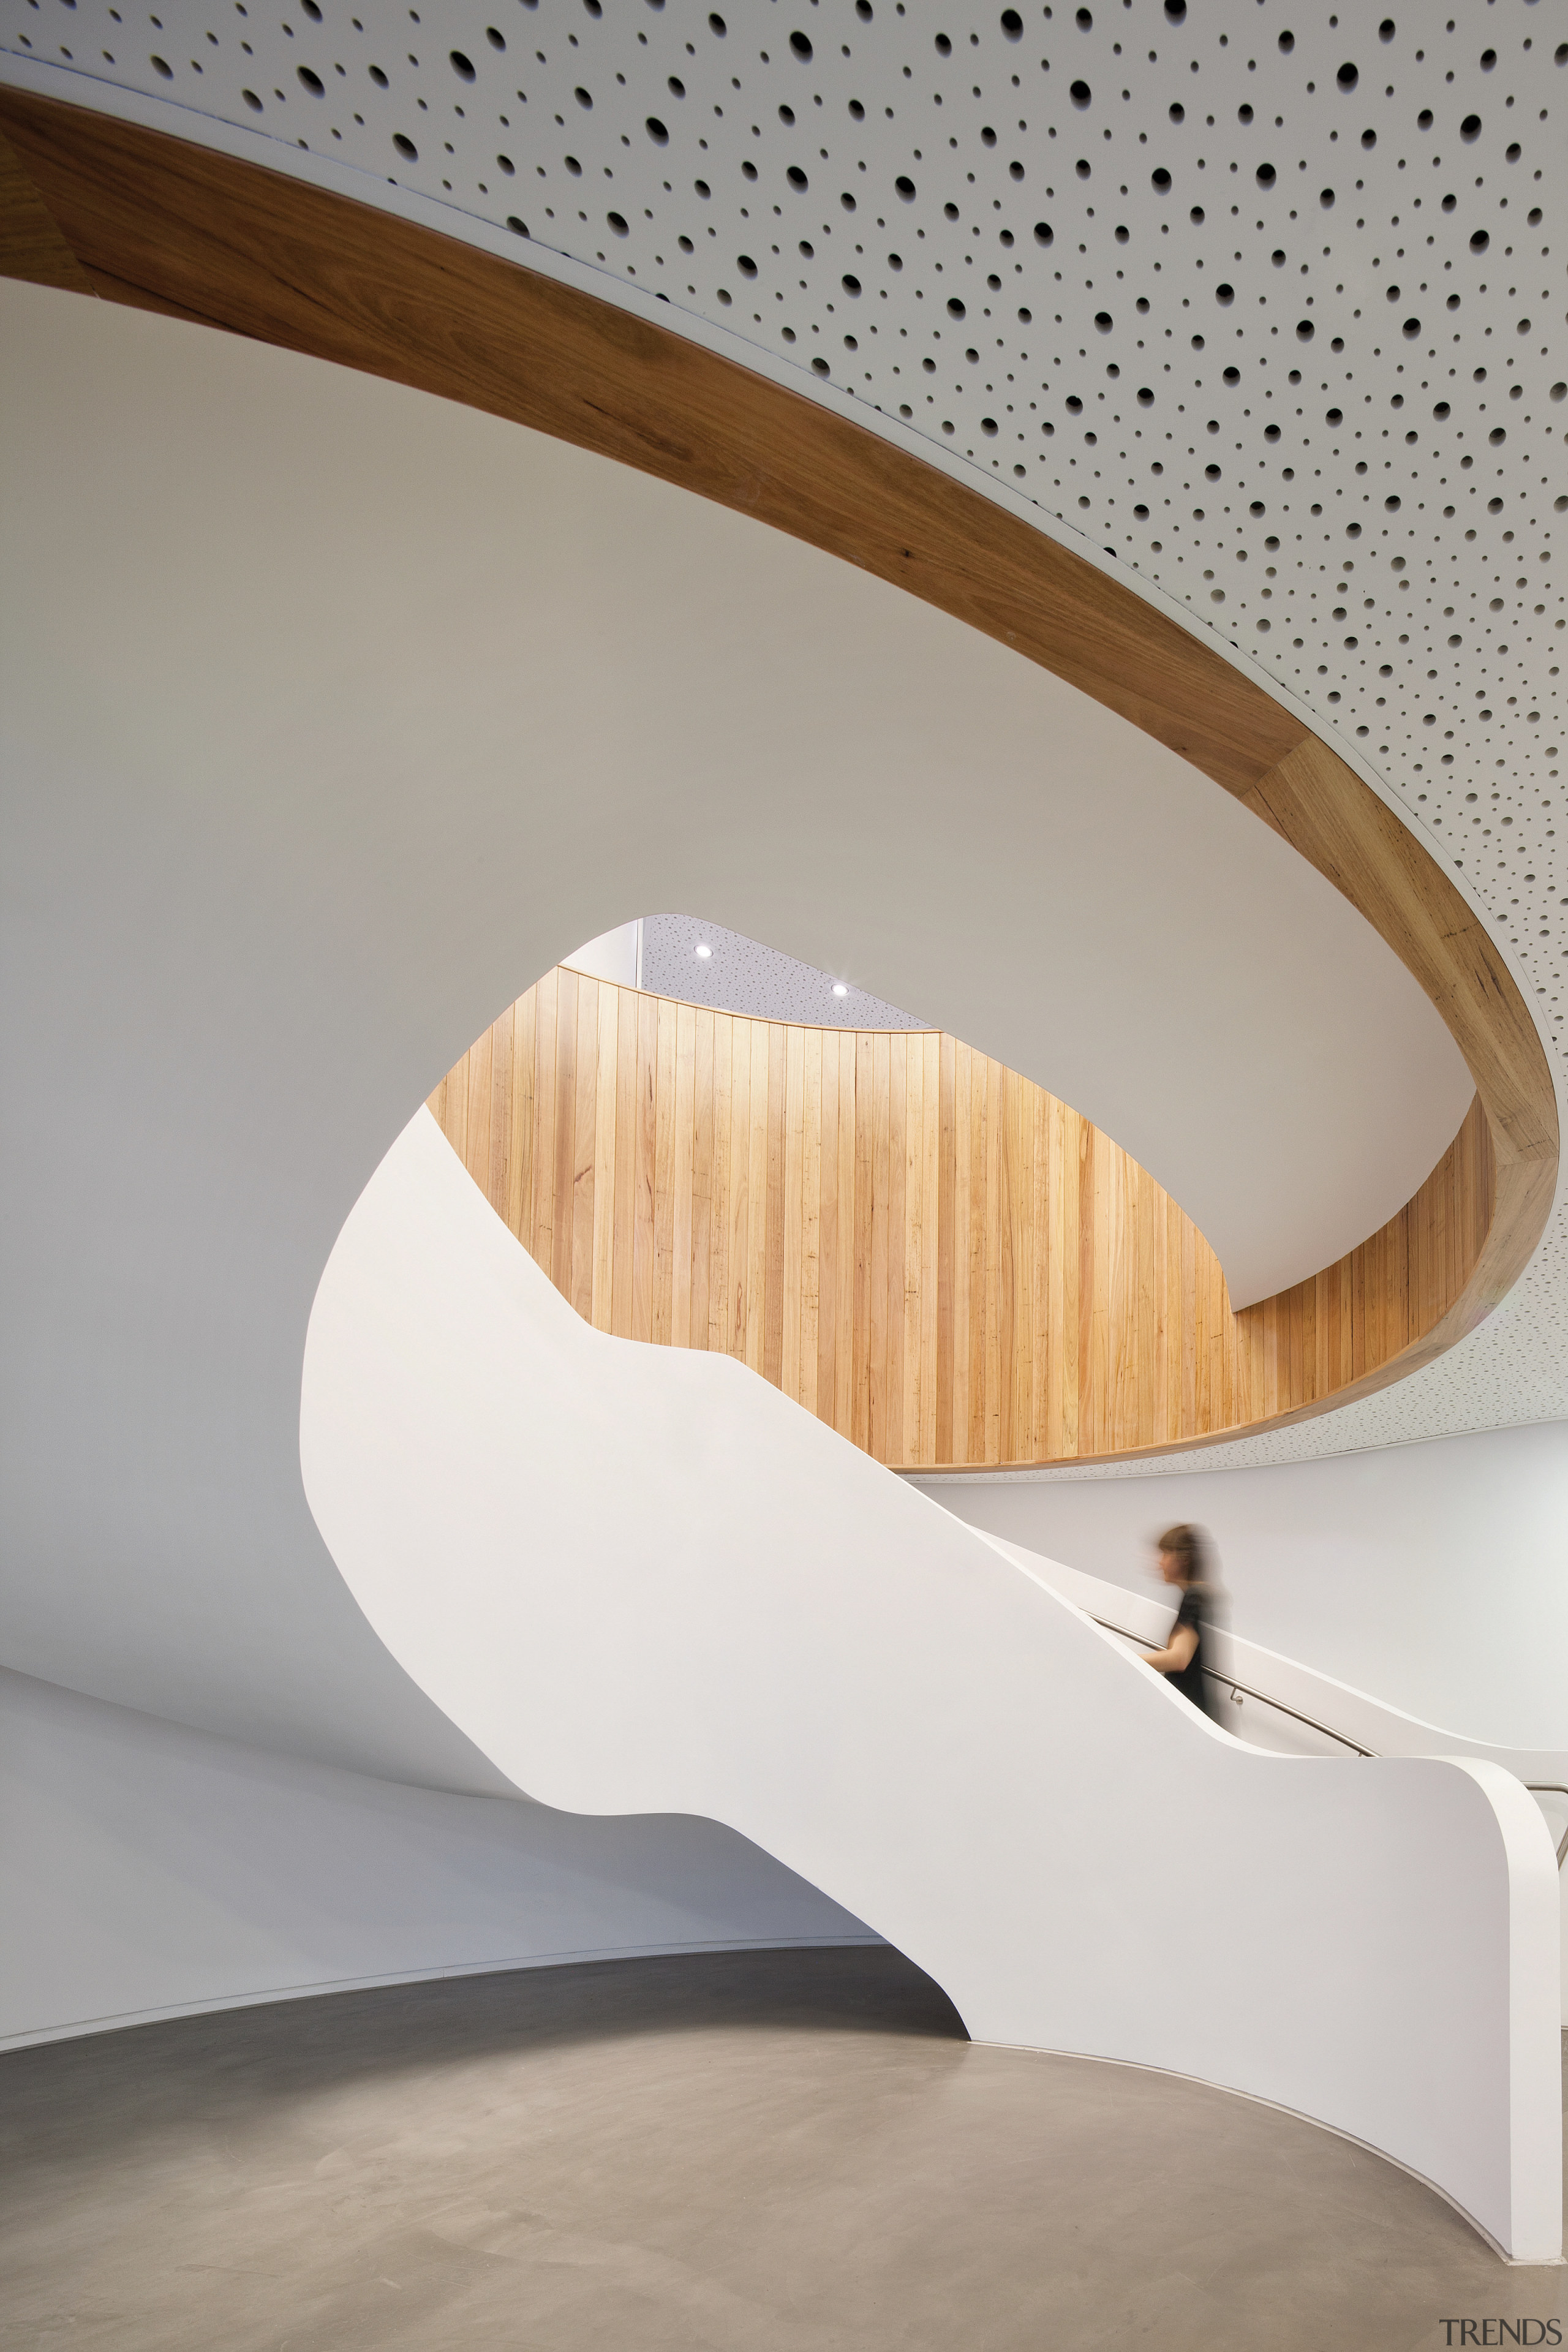 The spiral staircase in the new Brookfield Multiplex angle, architecture, ceiling, furniture, interior design, lighting, plywood, product design, table, tap, wood, gray